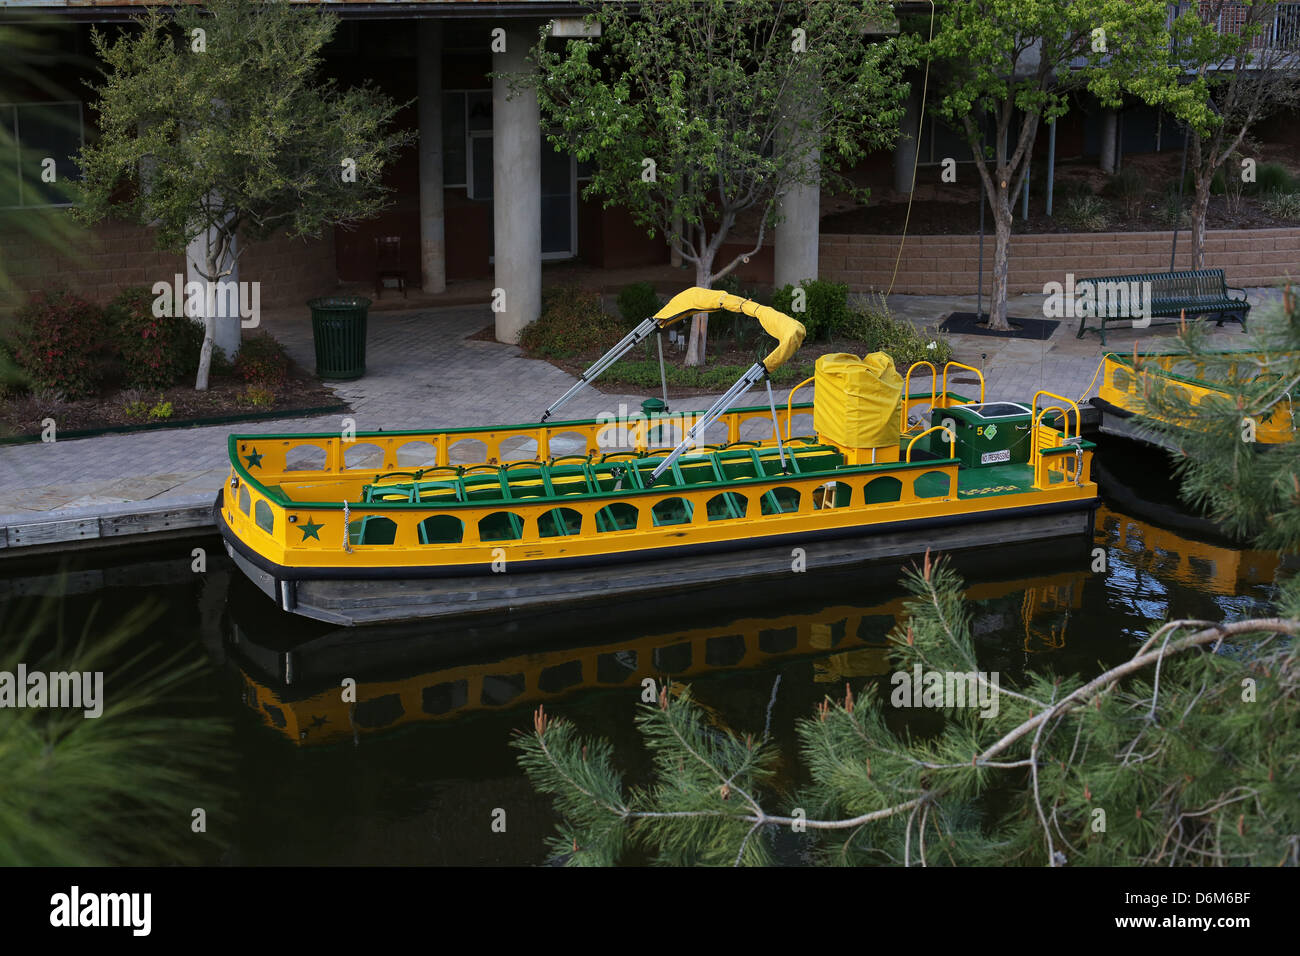 An empty water taxi in Oklahoma City. - Stock Image